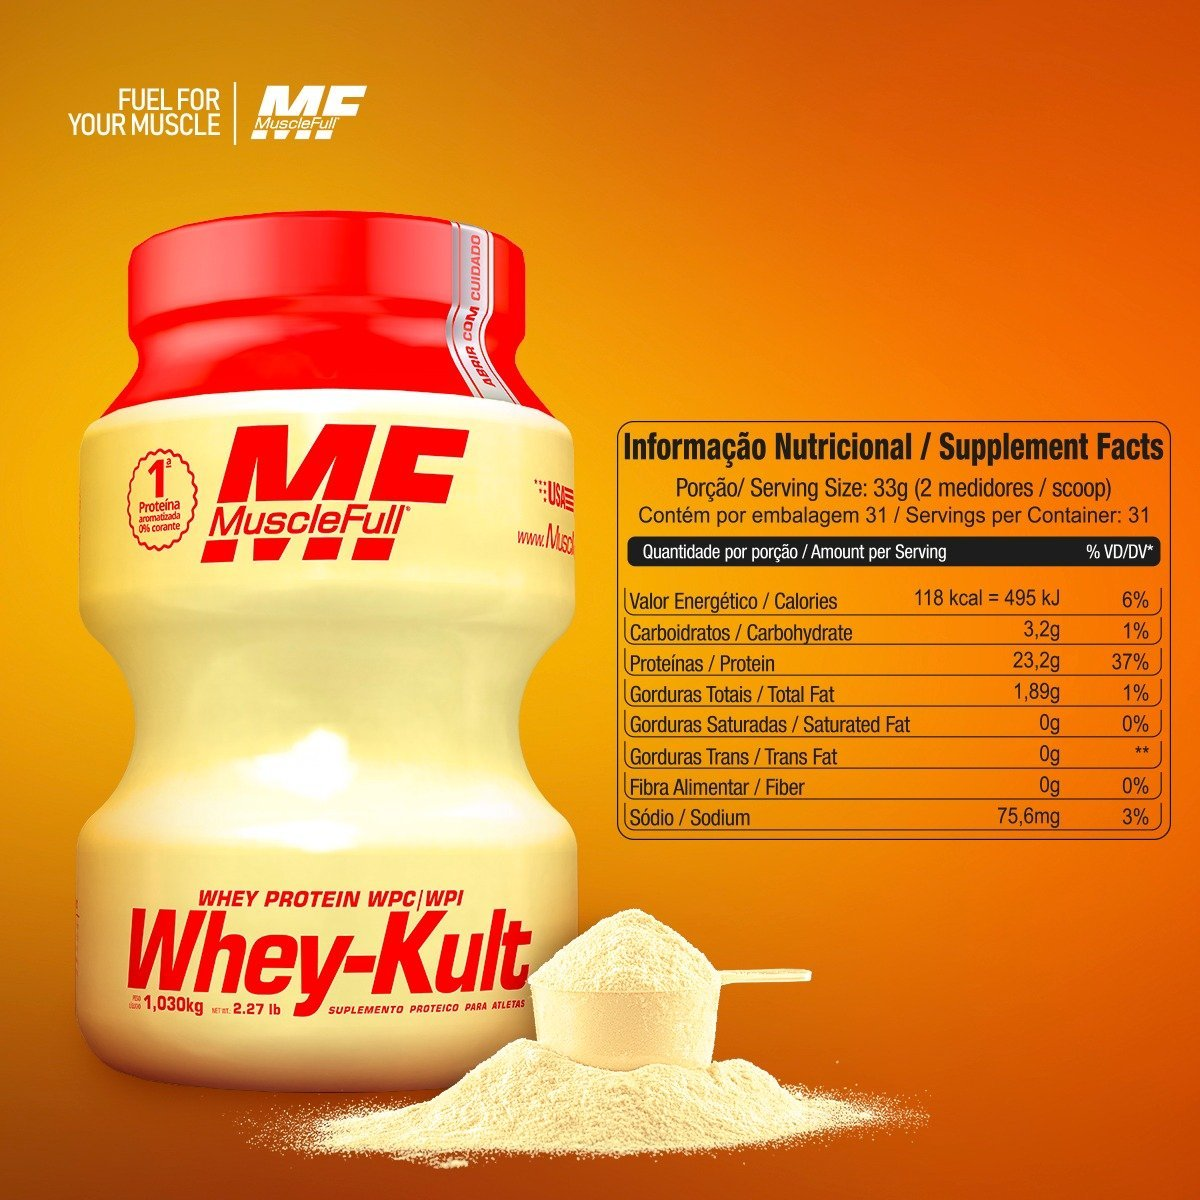 tabela-nutricional-whey-kult-1030g-muscle-full-primo-suplementos